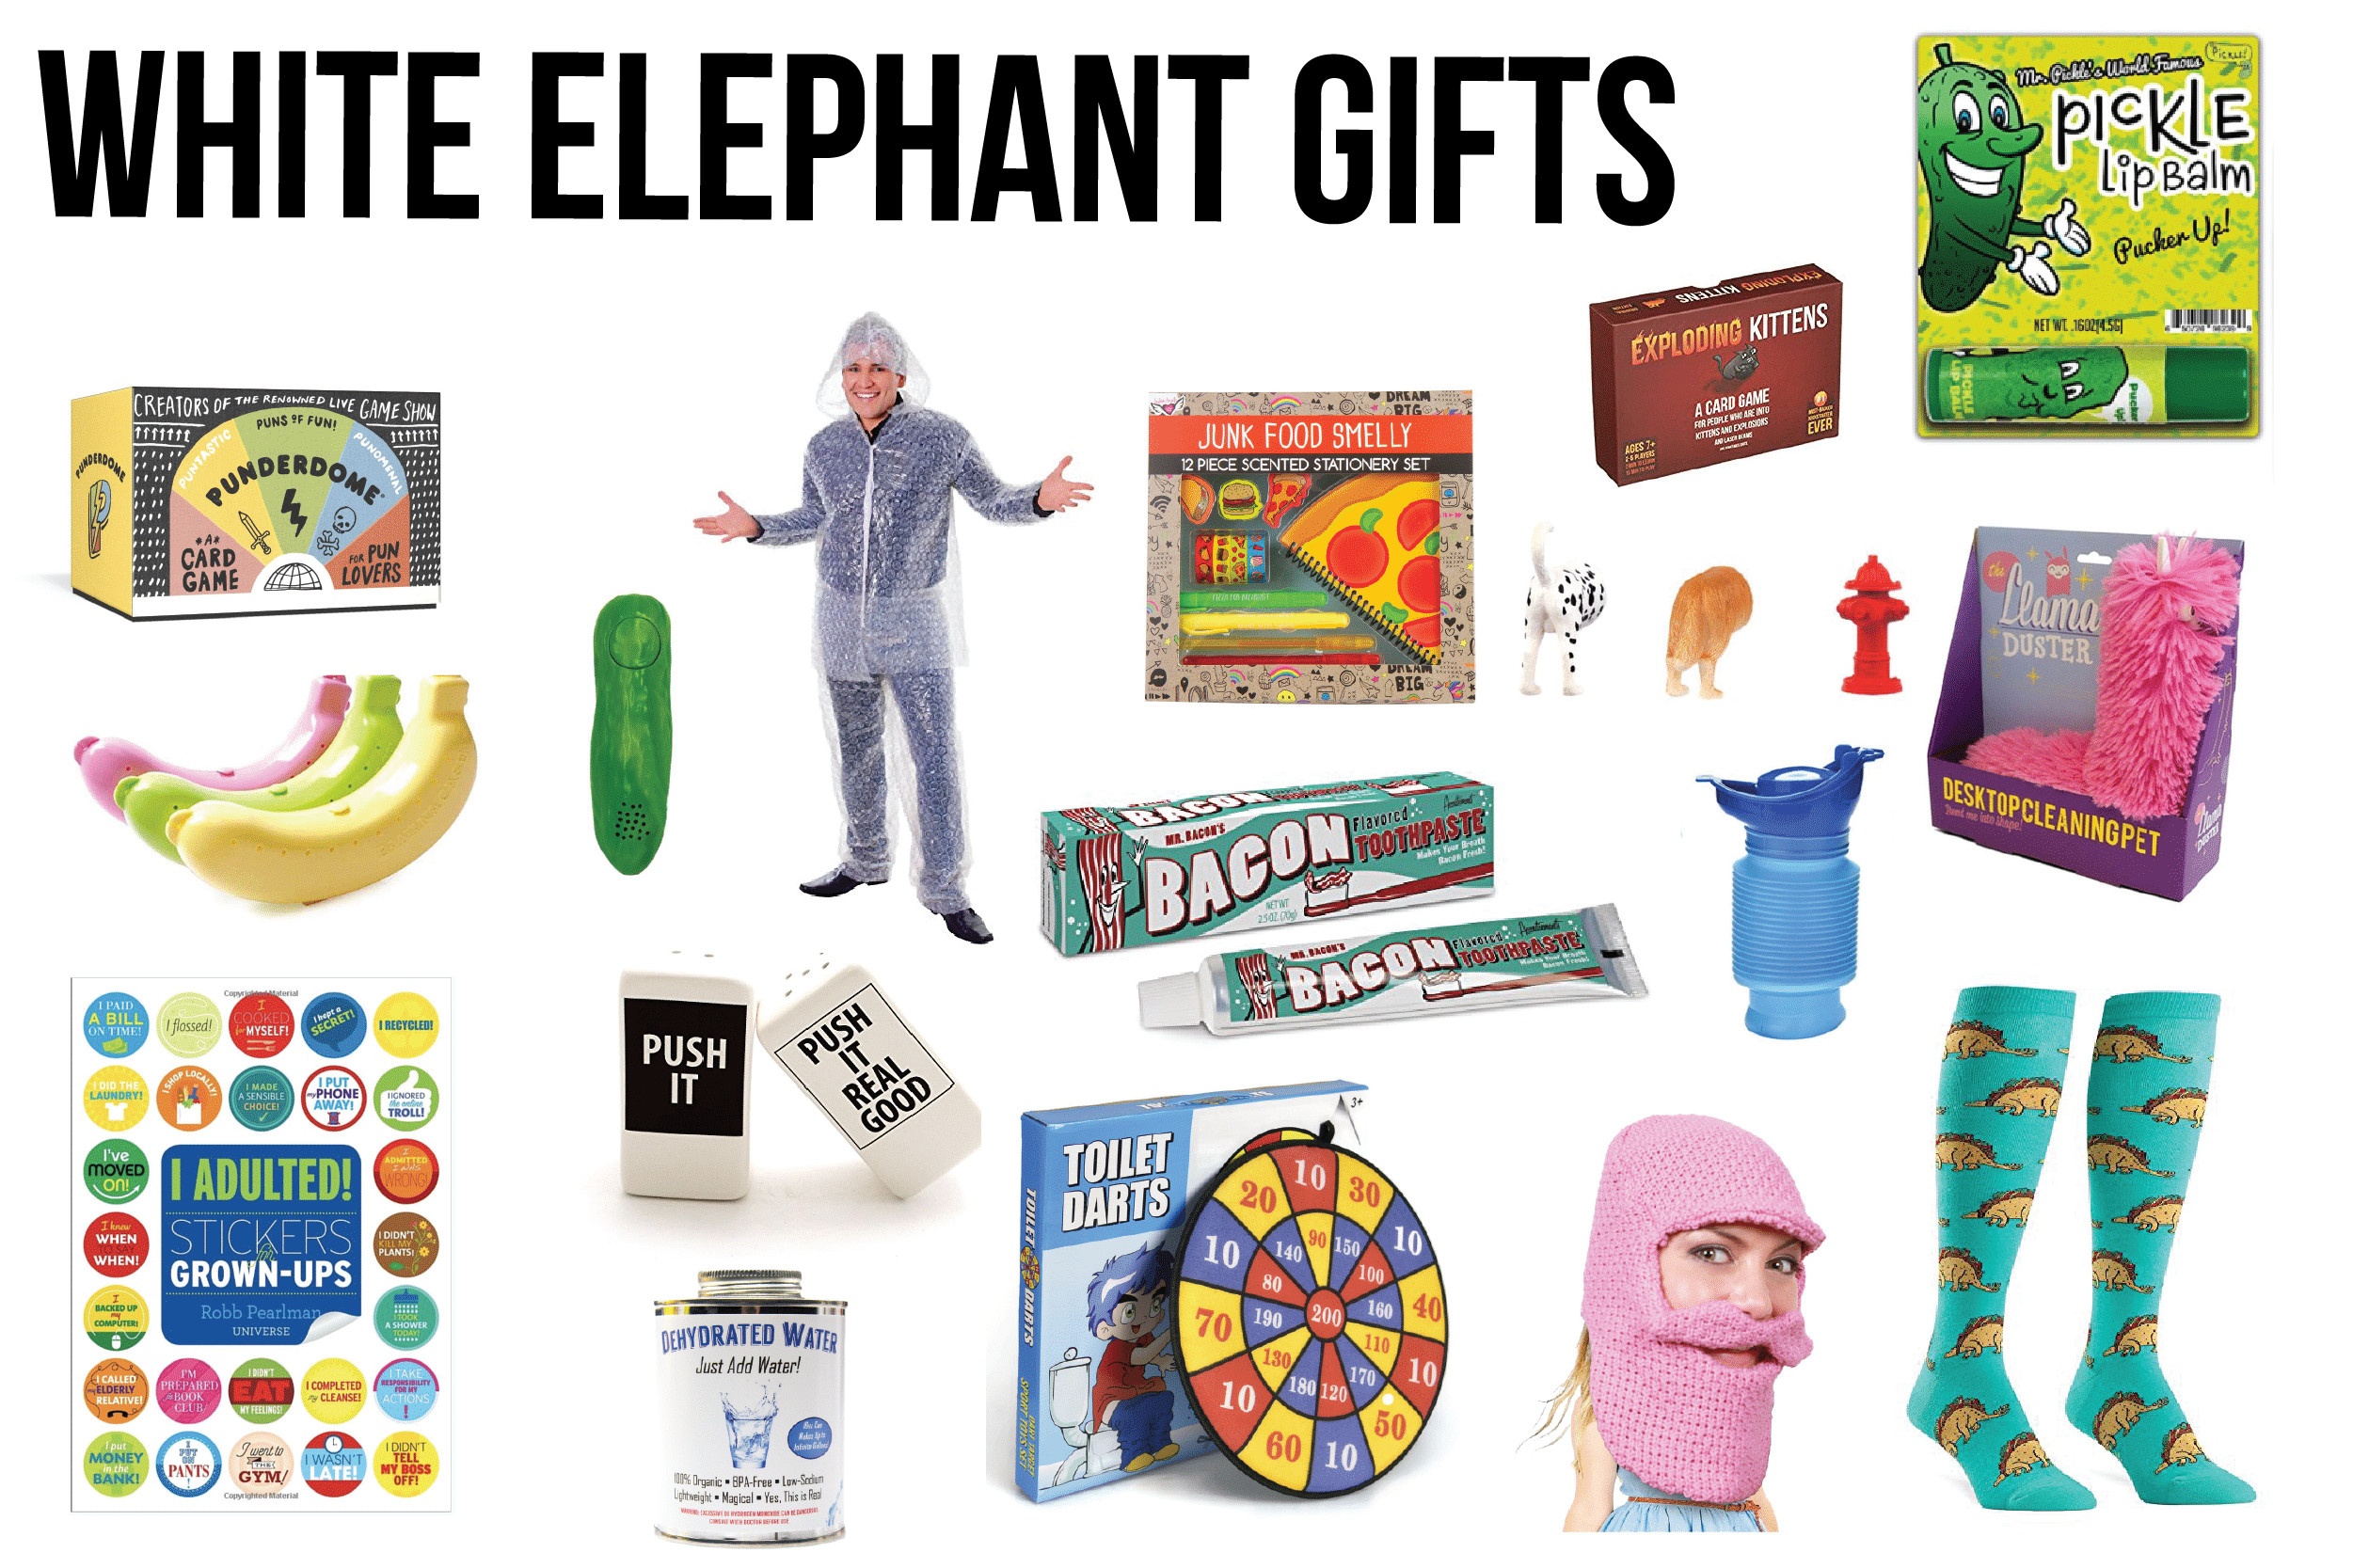 Best ideas about What Is A White Elephant Gift Exchange Ideas . Save or Pin 100 of the Best White Elephant Gifts & Other Gift Ideas Now.